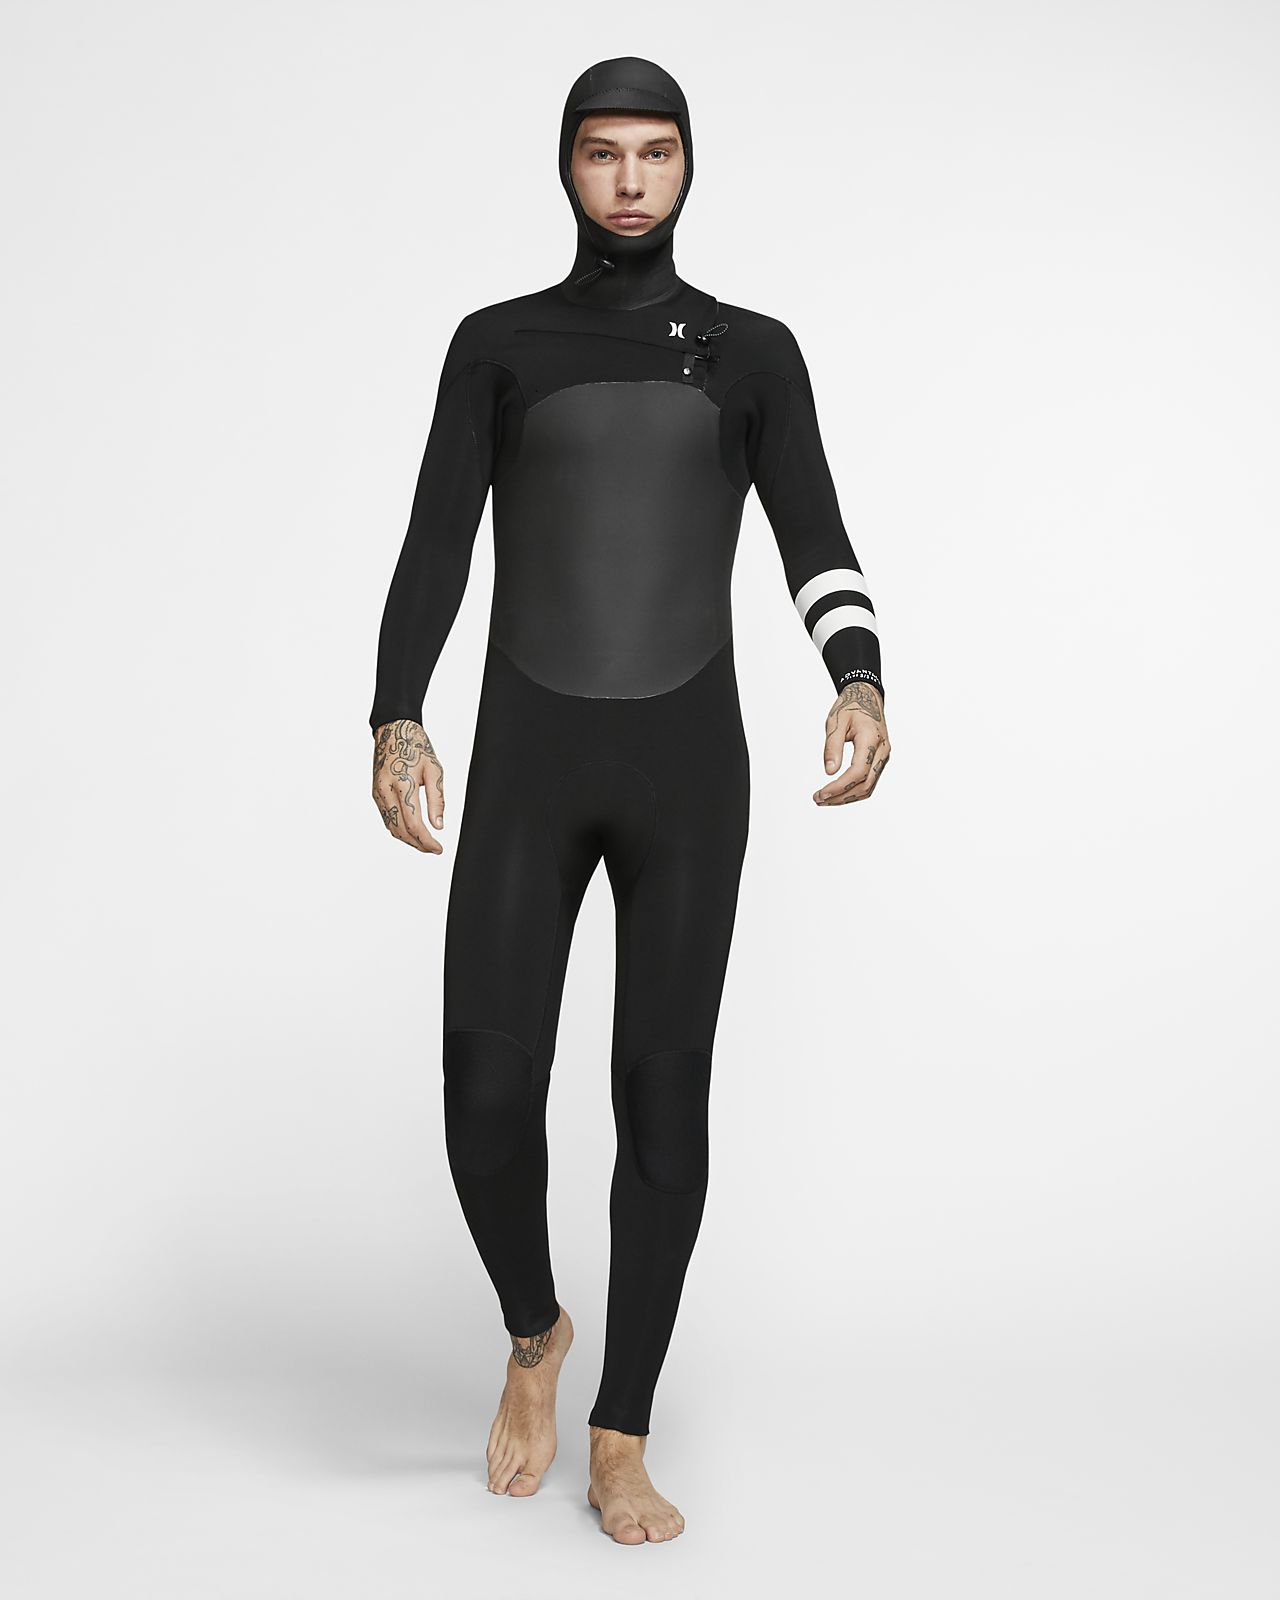 Hurley Advantage Plus 5/3mm Fullsuit Kapüşonlu Erkek Wetsuit'i